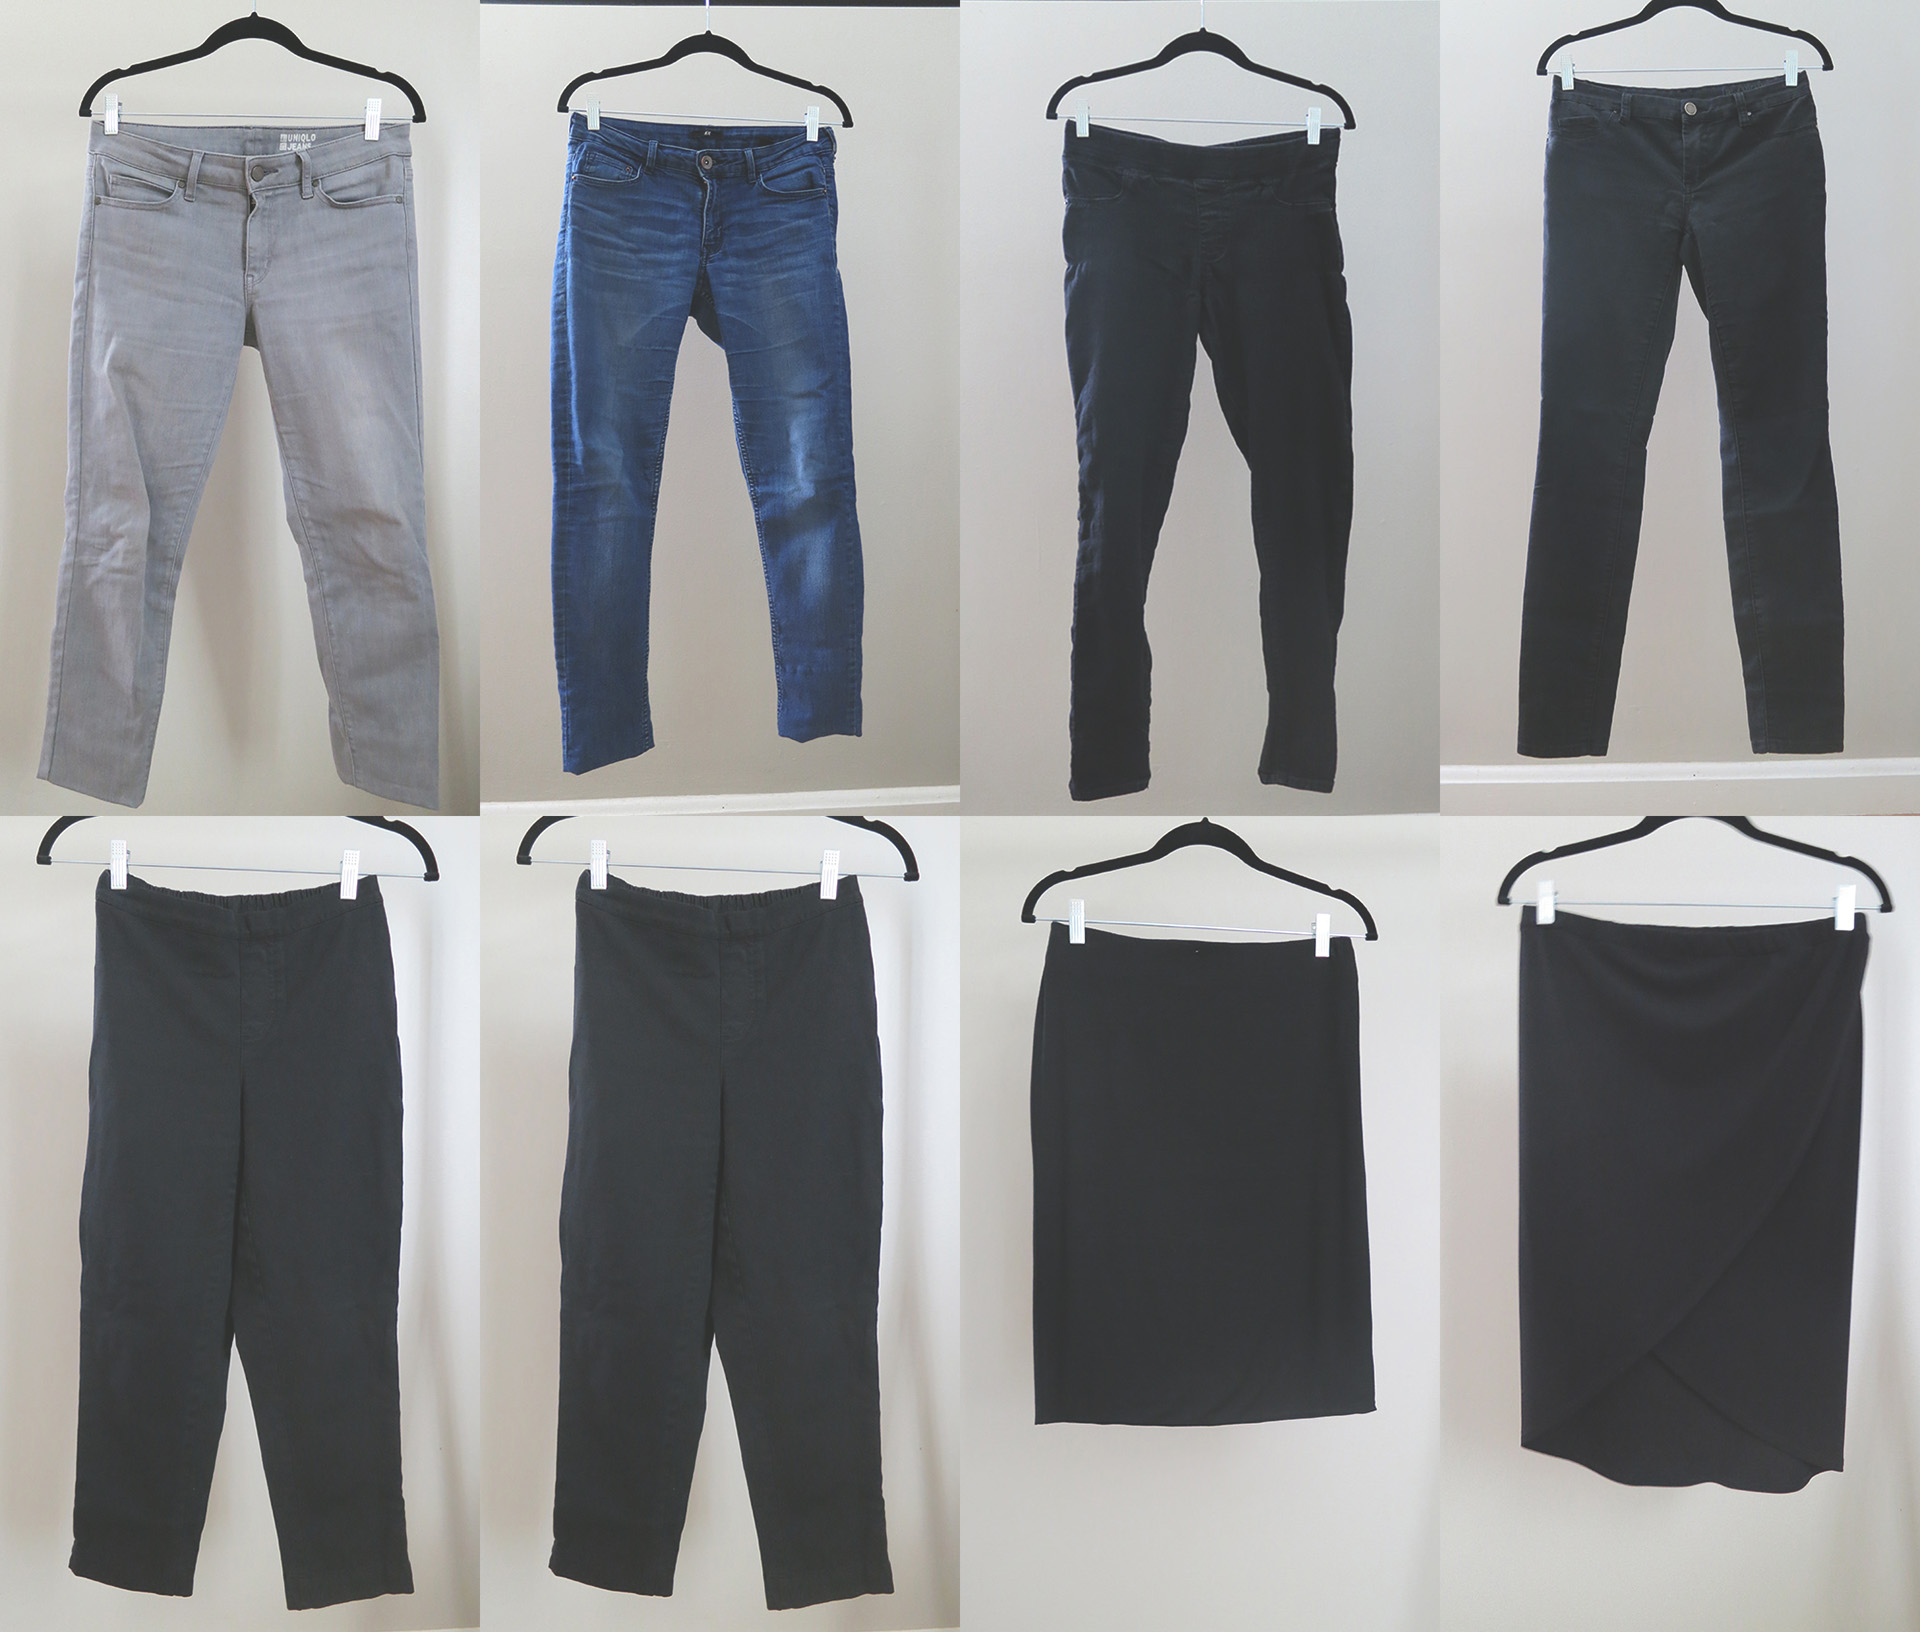 capsule_wardrobe_bottoms_spring2016